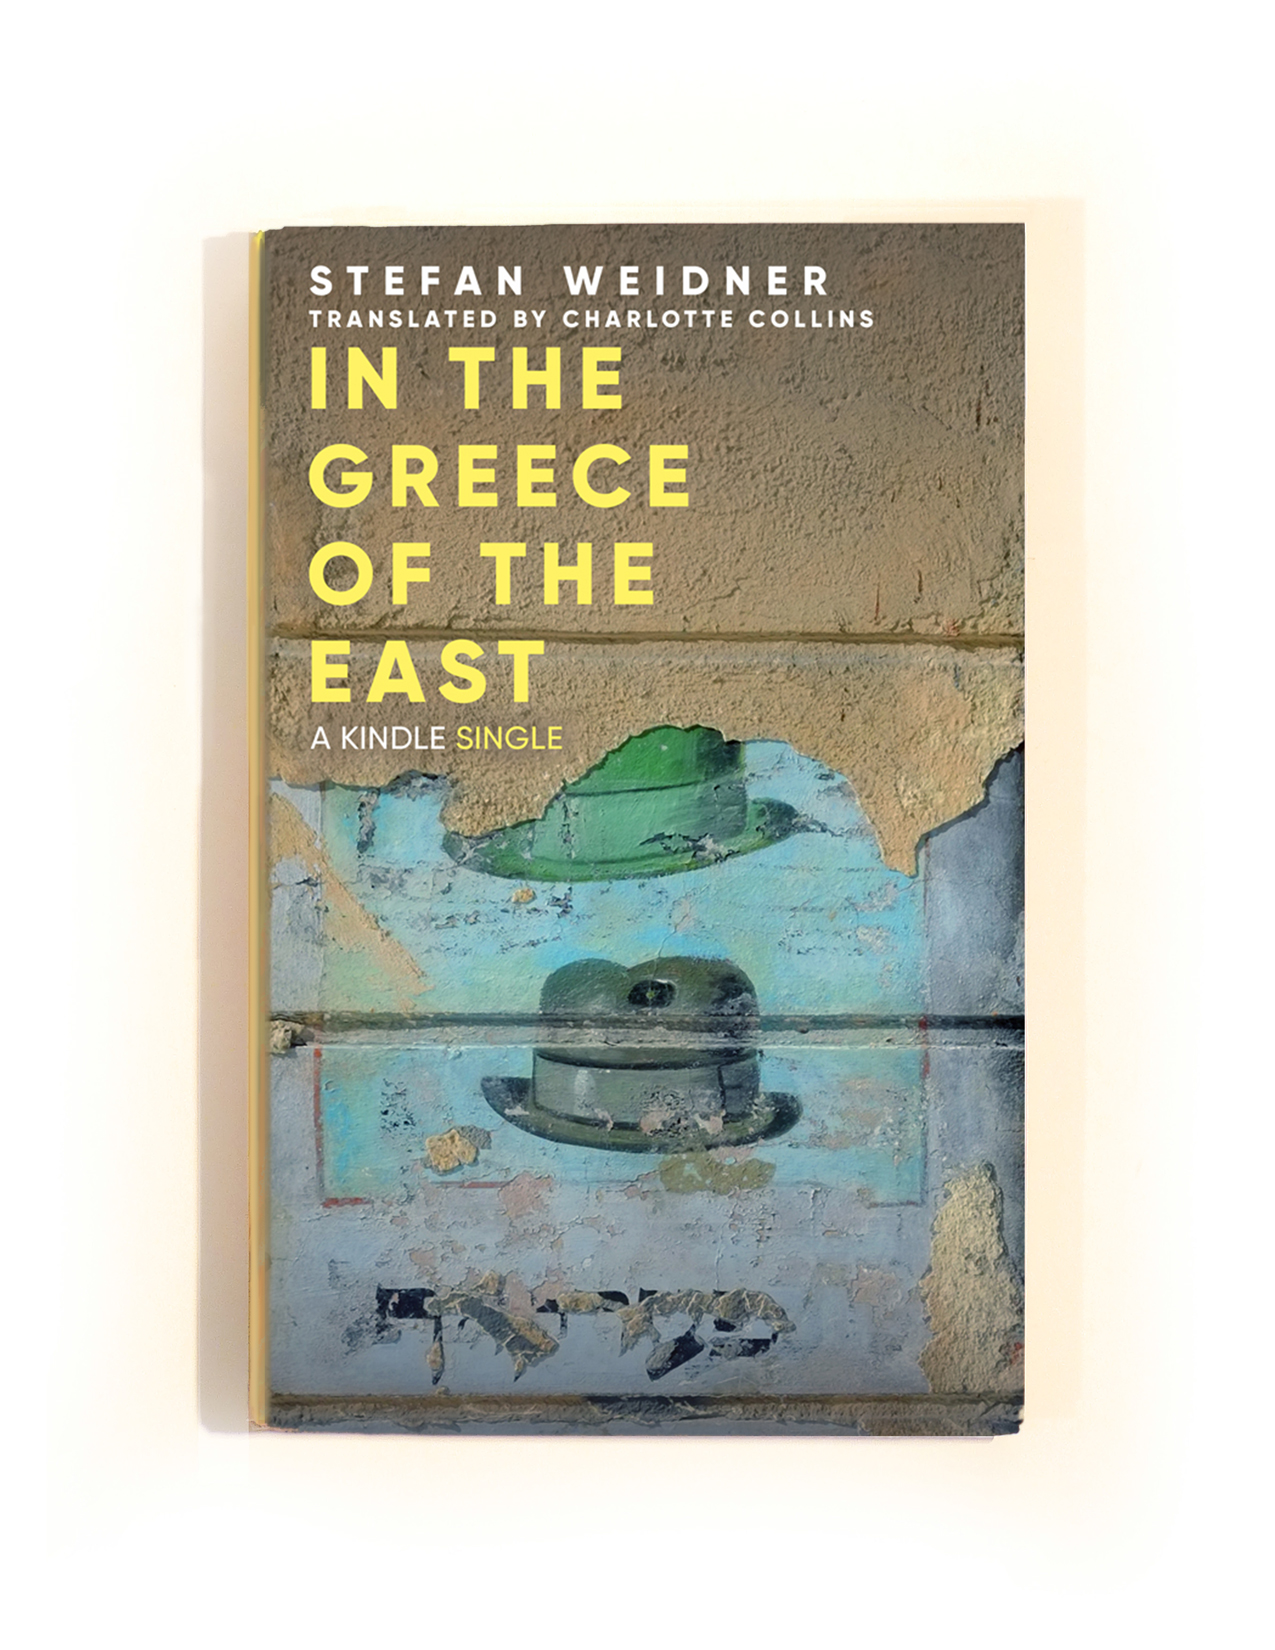 IN-THE-GREECE-OF-THE-EAST-website-book-cover.jpg